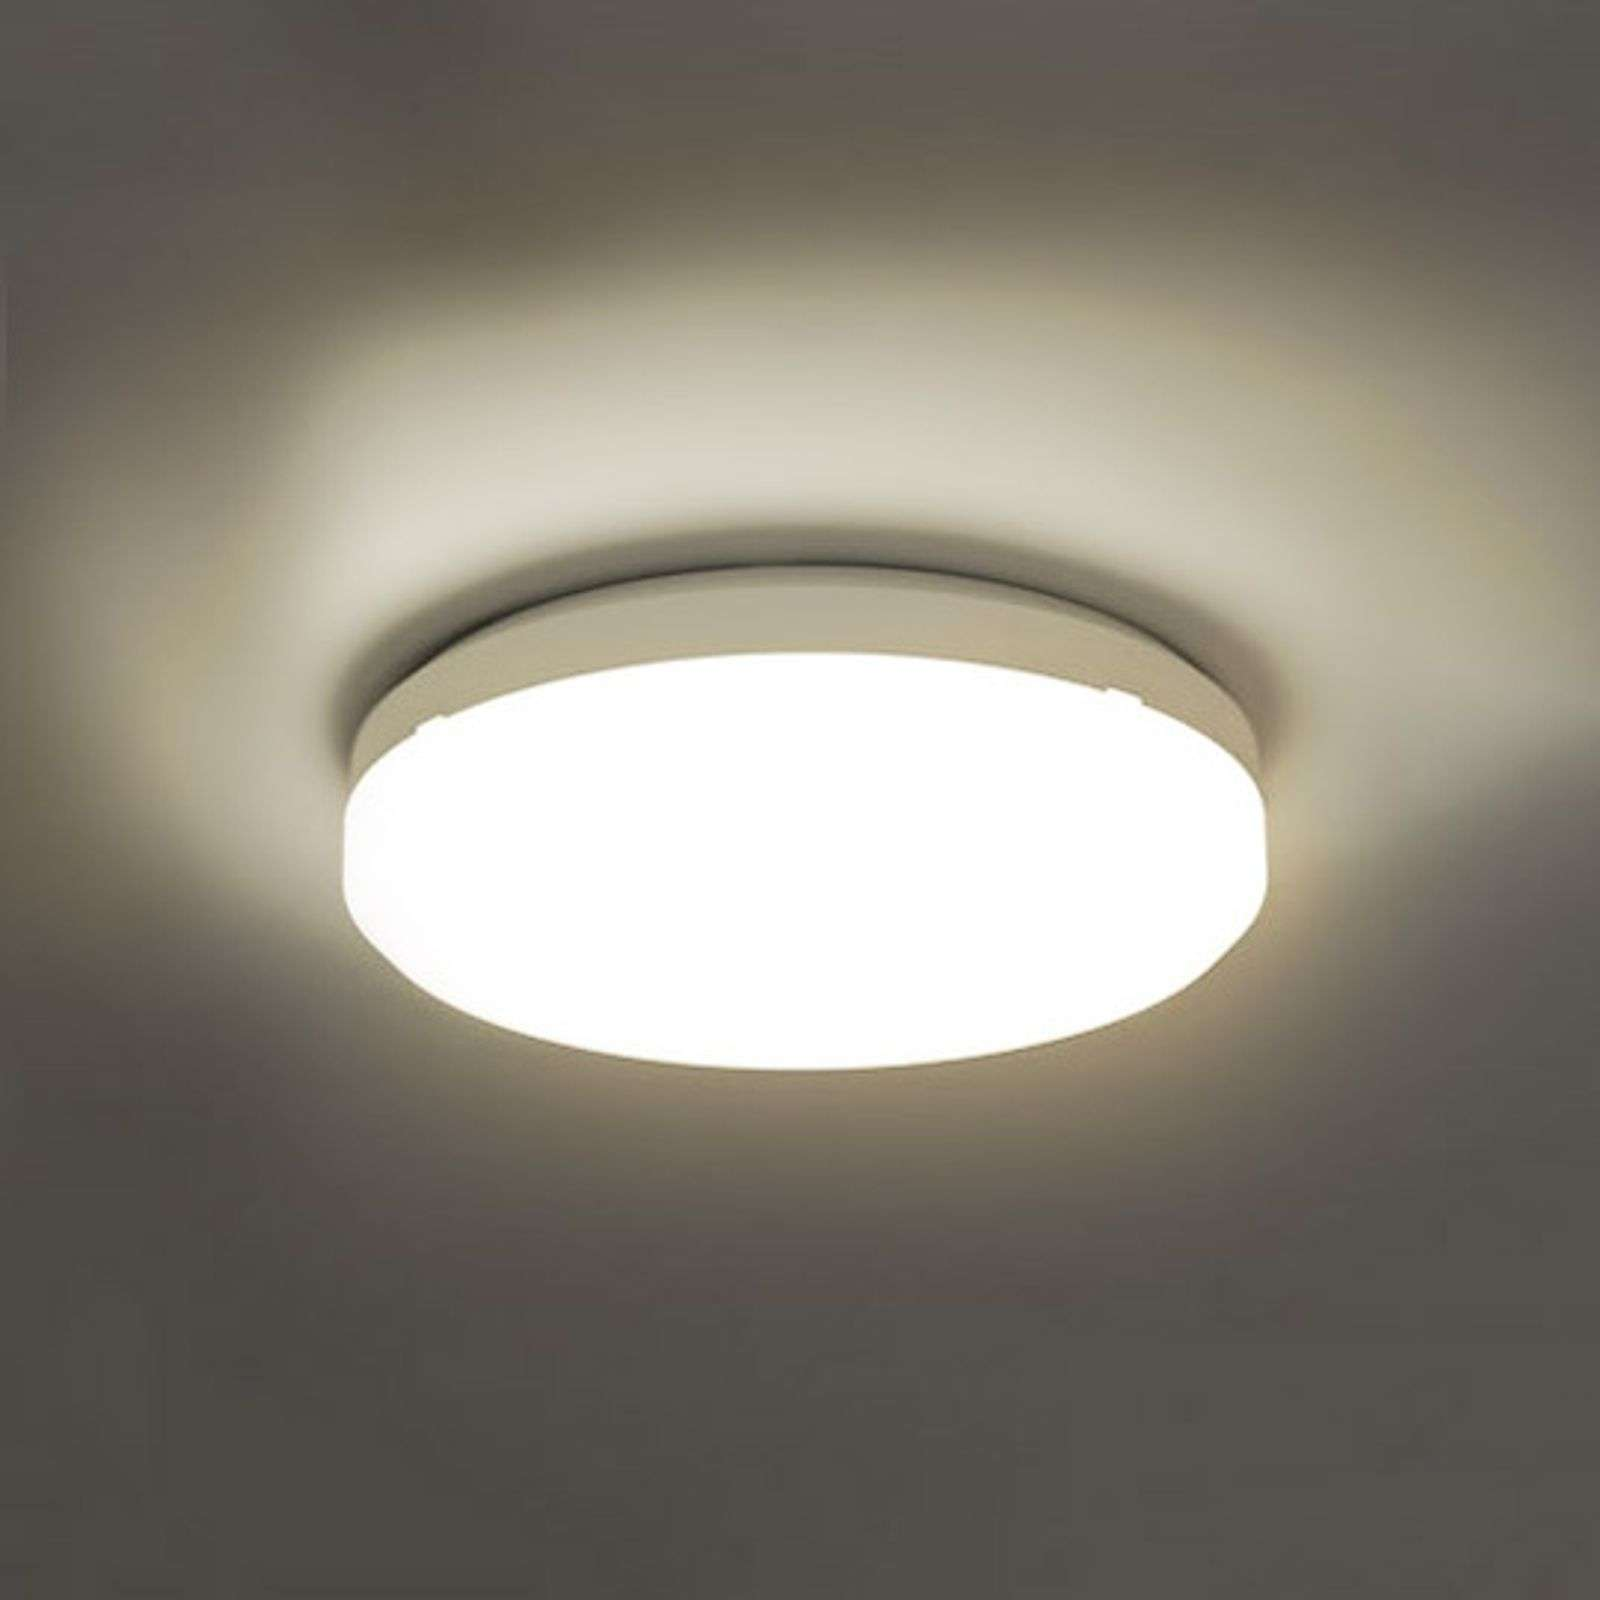 Sun 15 - lampada LED IP65, 18 W 3000K ww